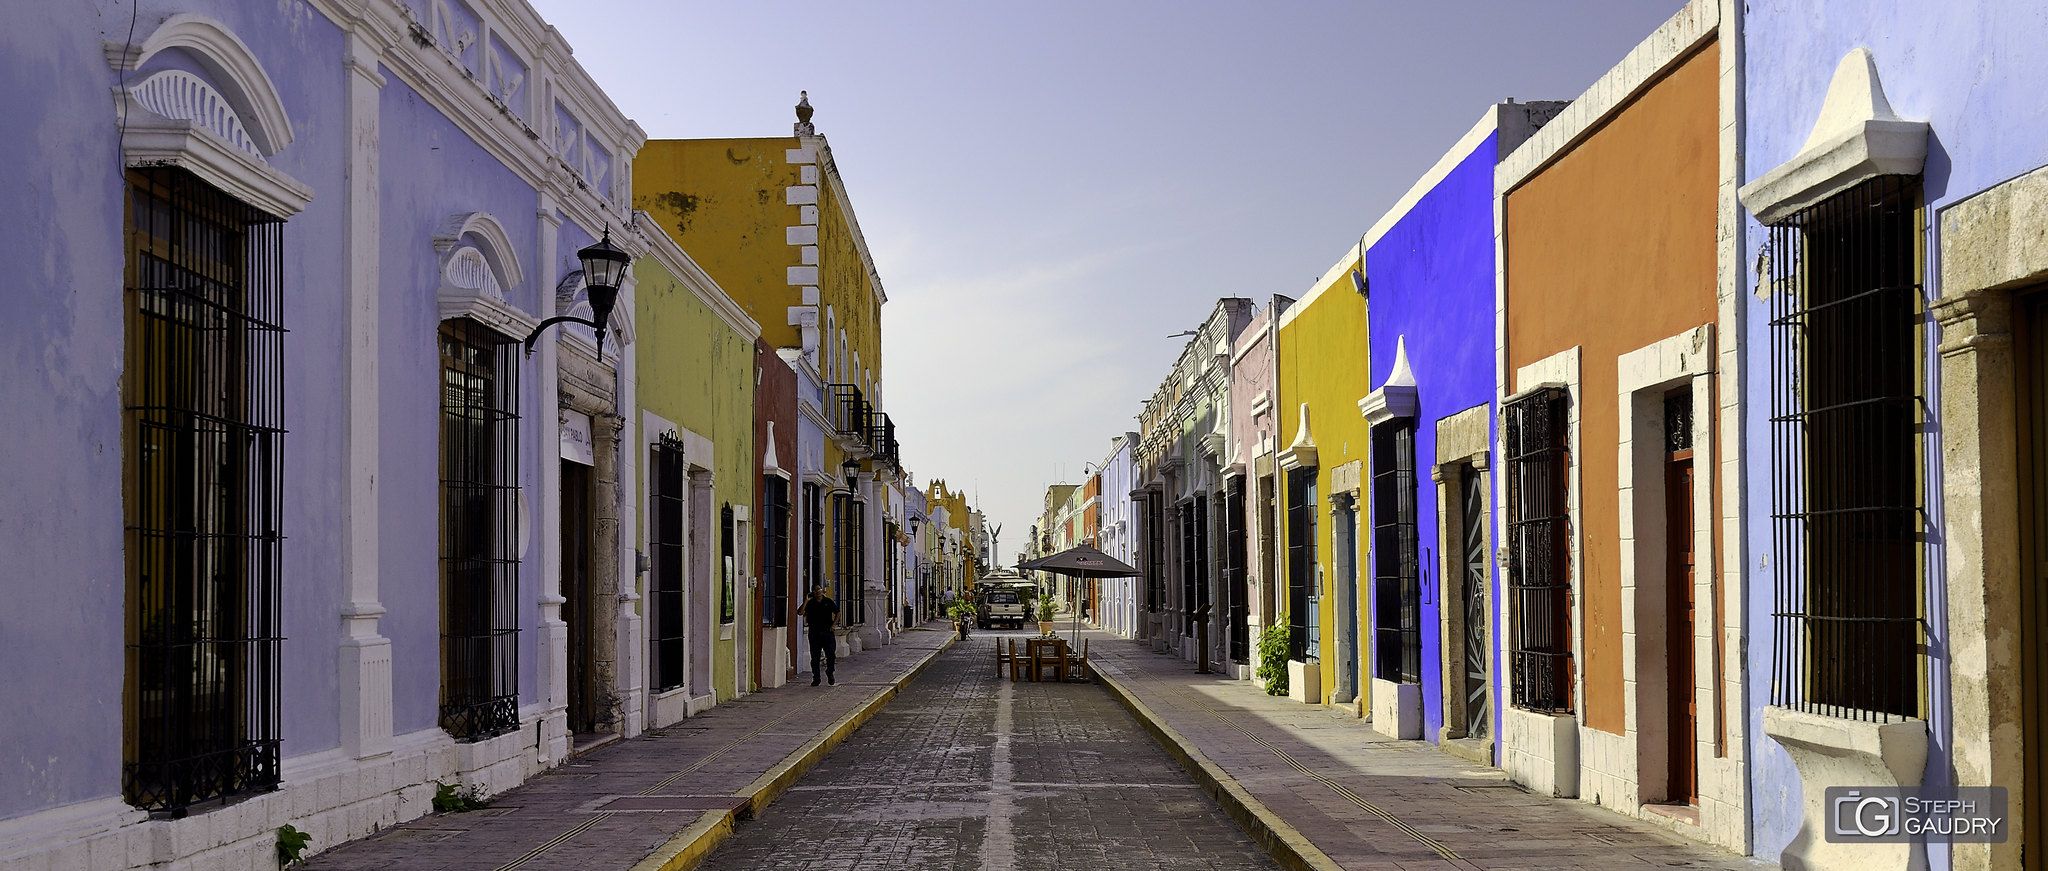 Les rues de Campeche (MEX) [Click to start slideshow]